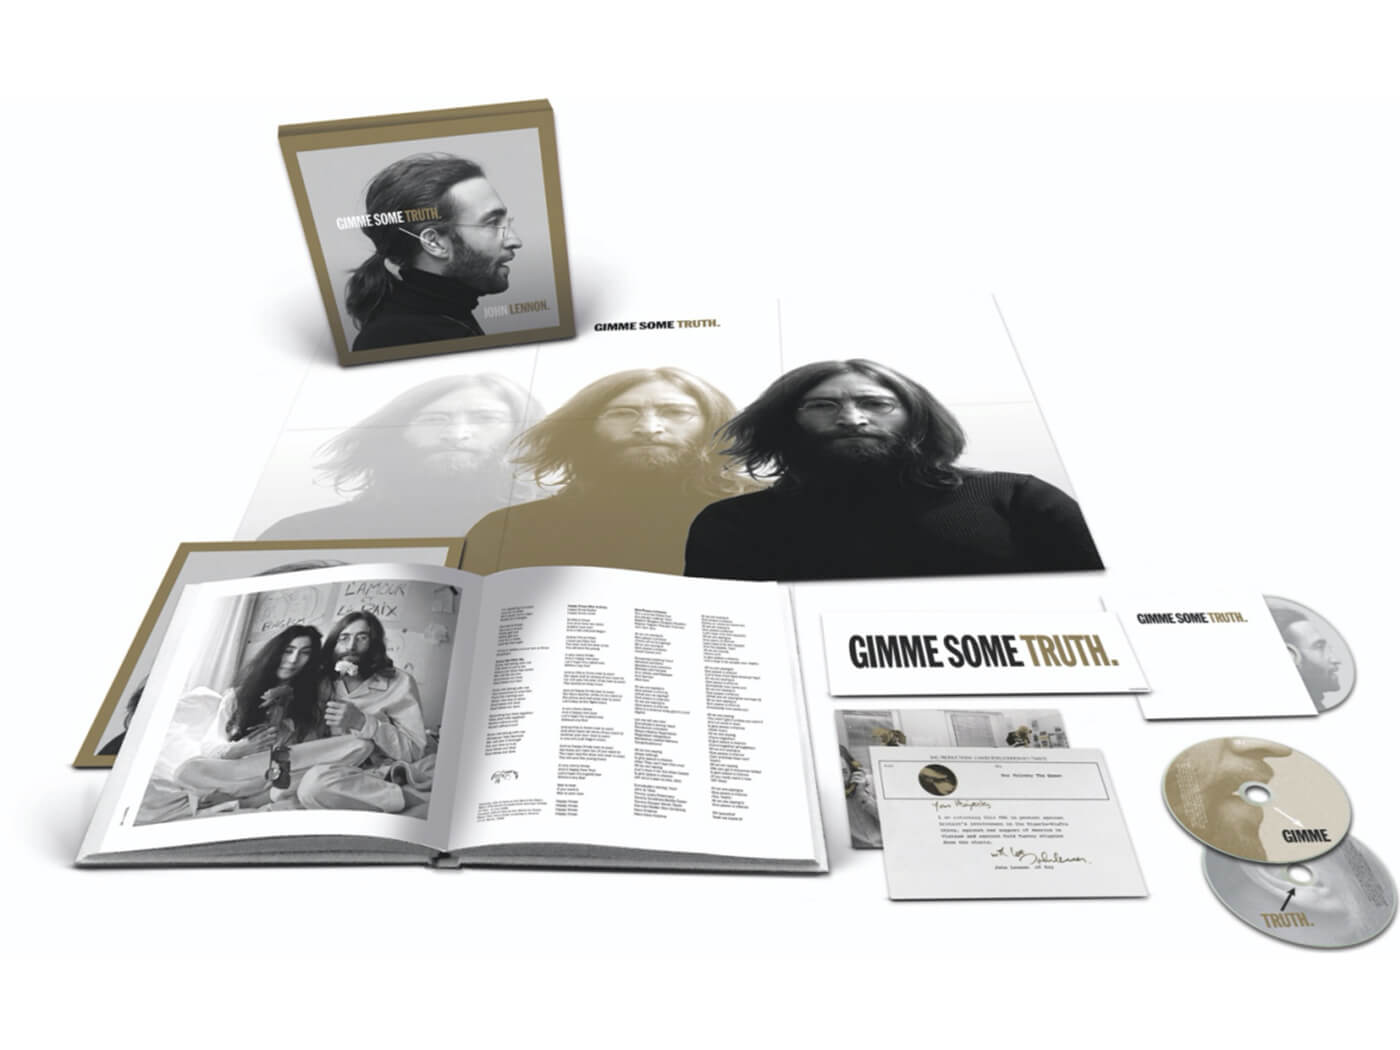 New John Lennon Box Set Announced Uncut